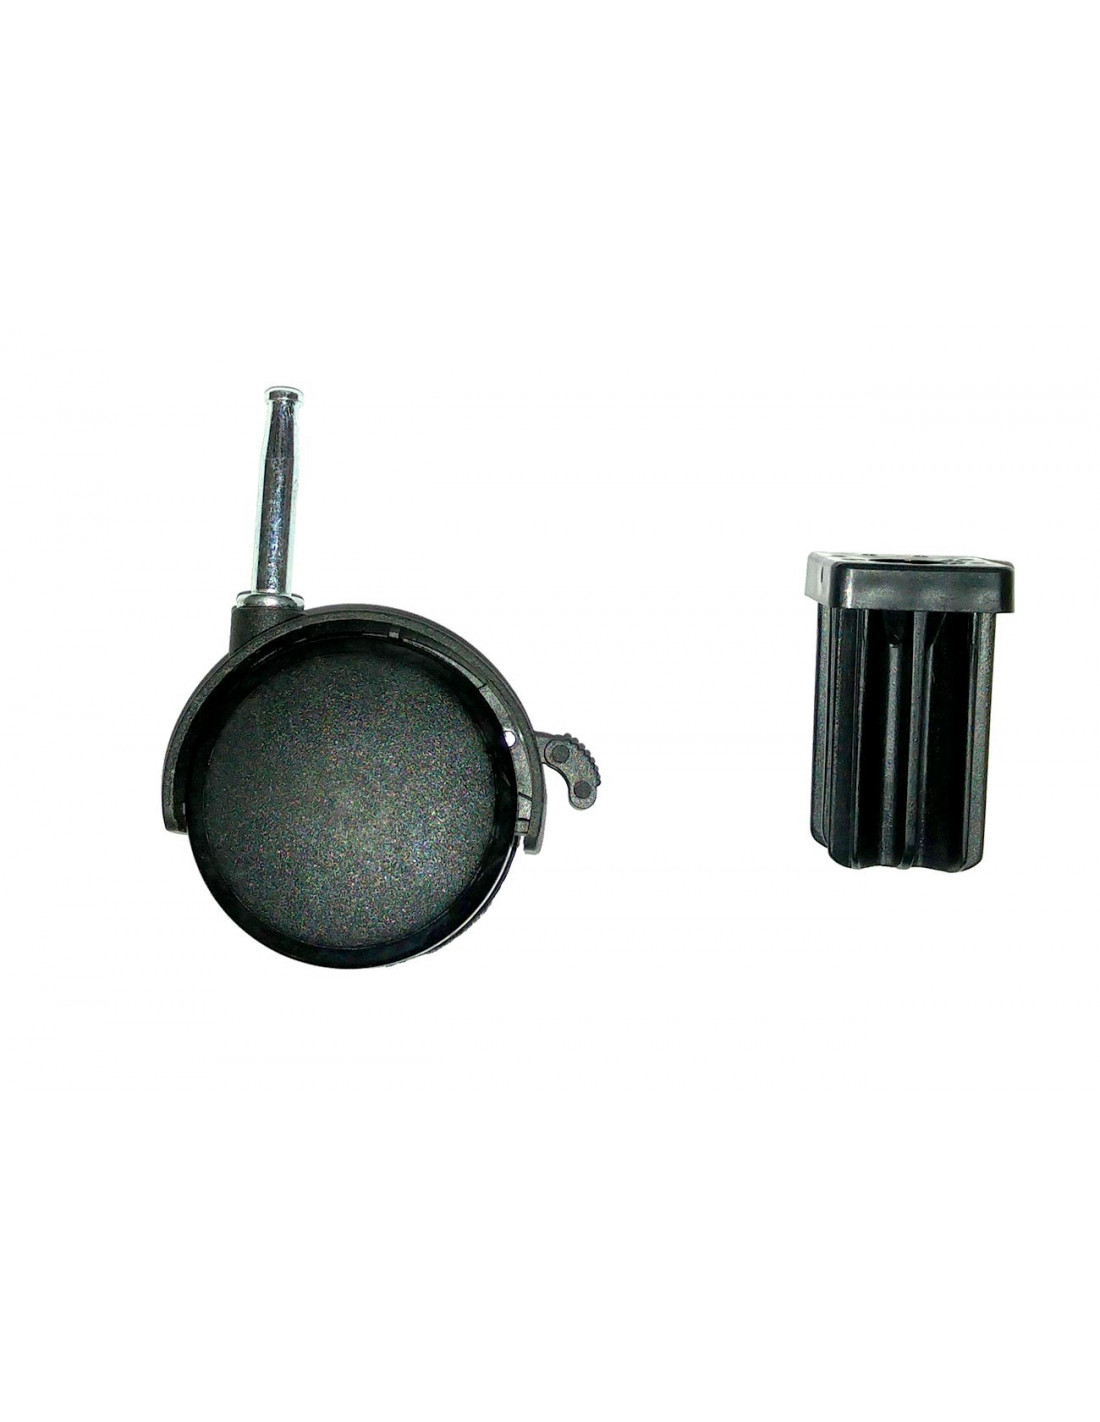 Genesis Silver /& Gold Weber Remplacement Roulette Roue Barbecue Grill avec insert Spirit